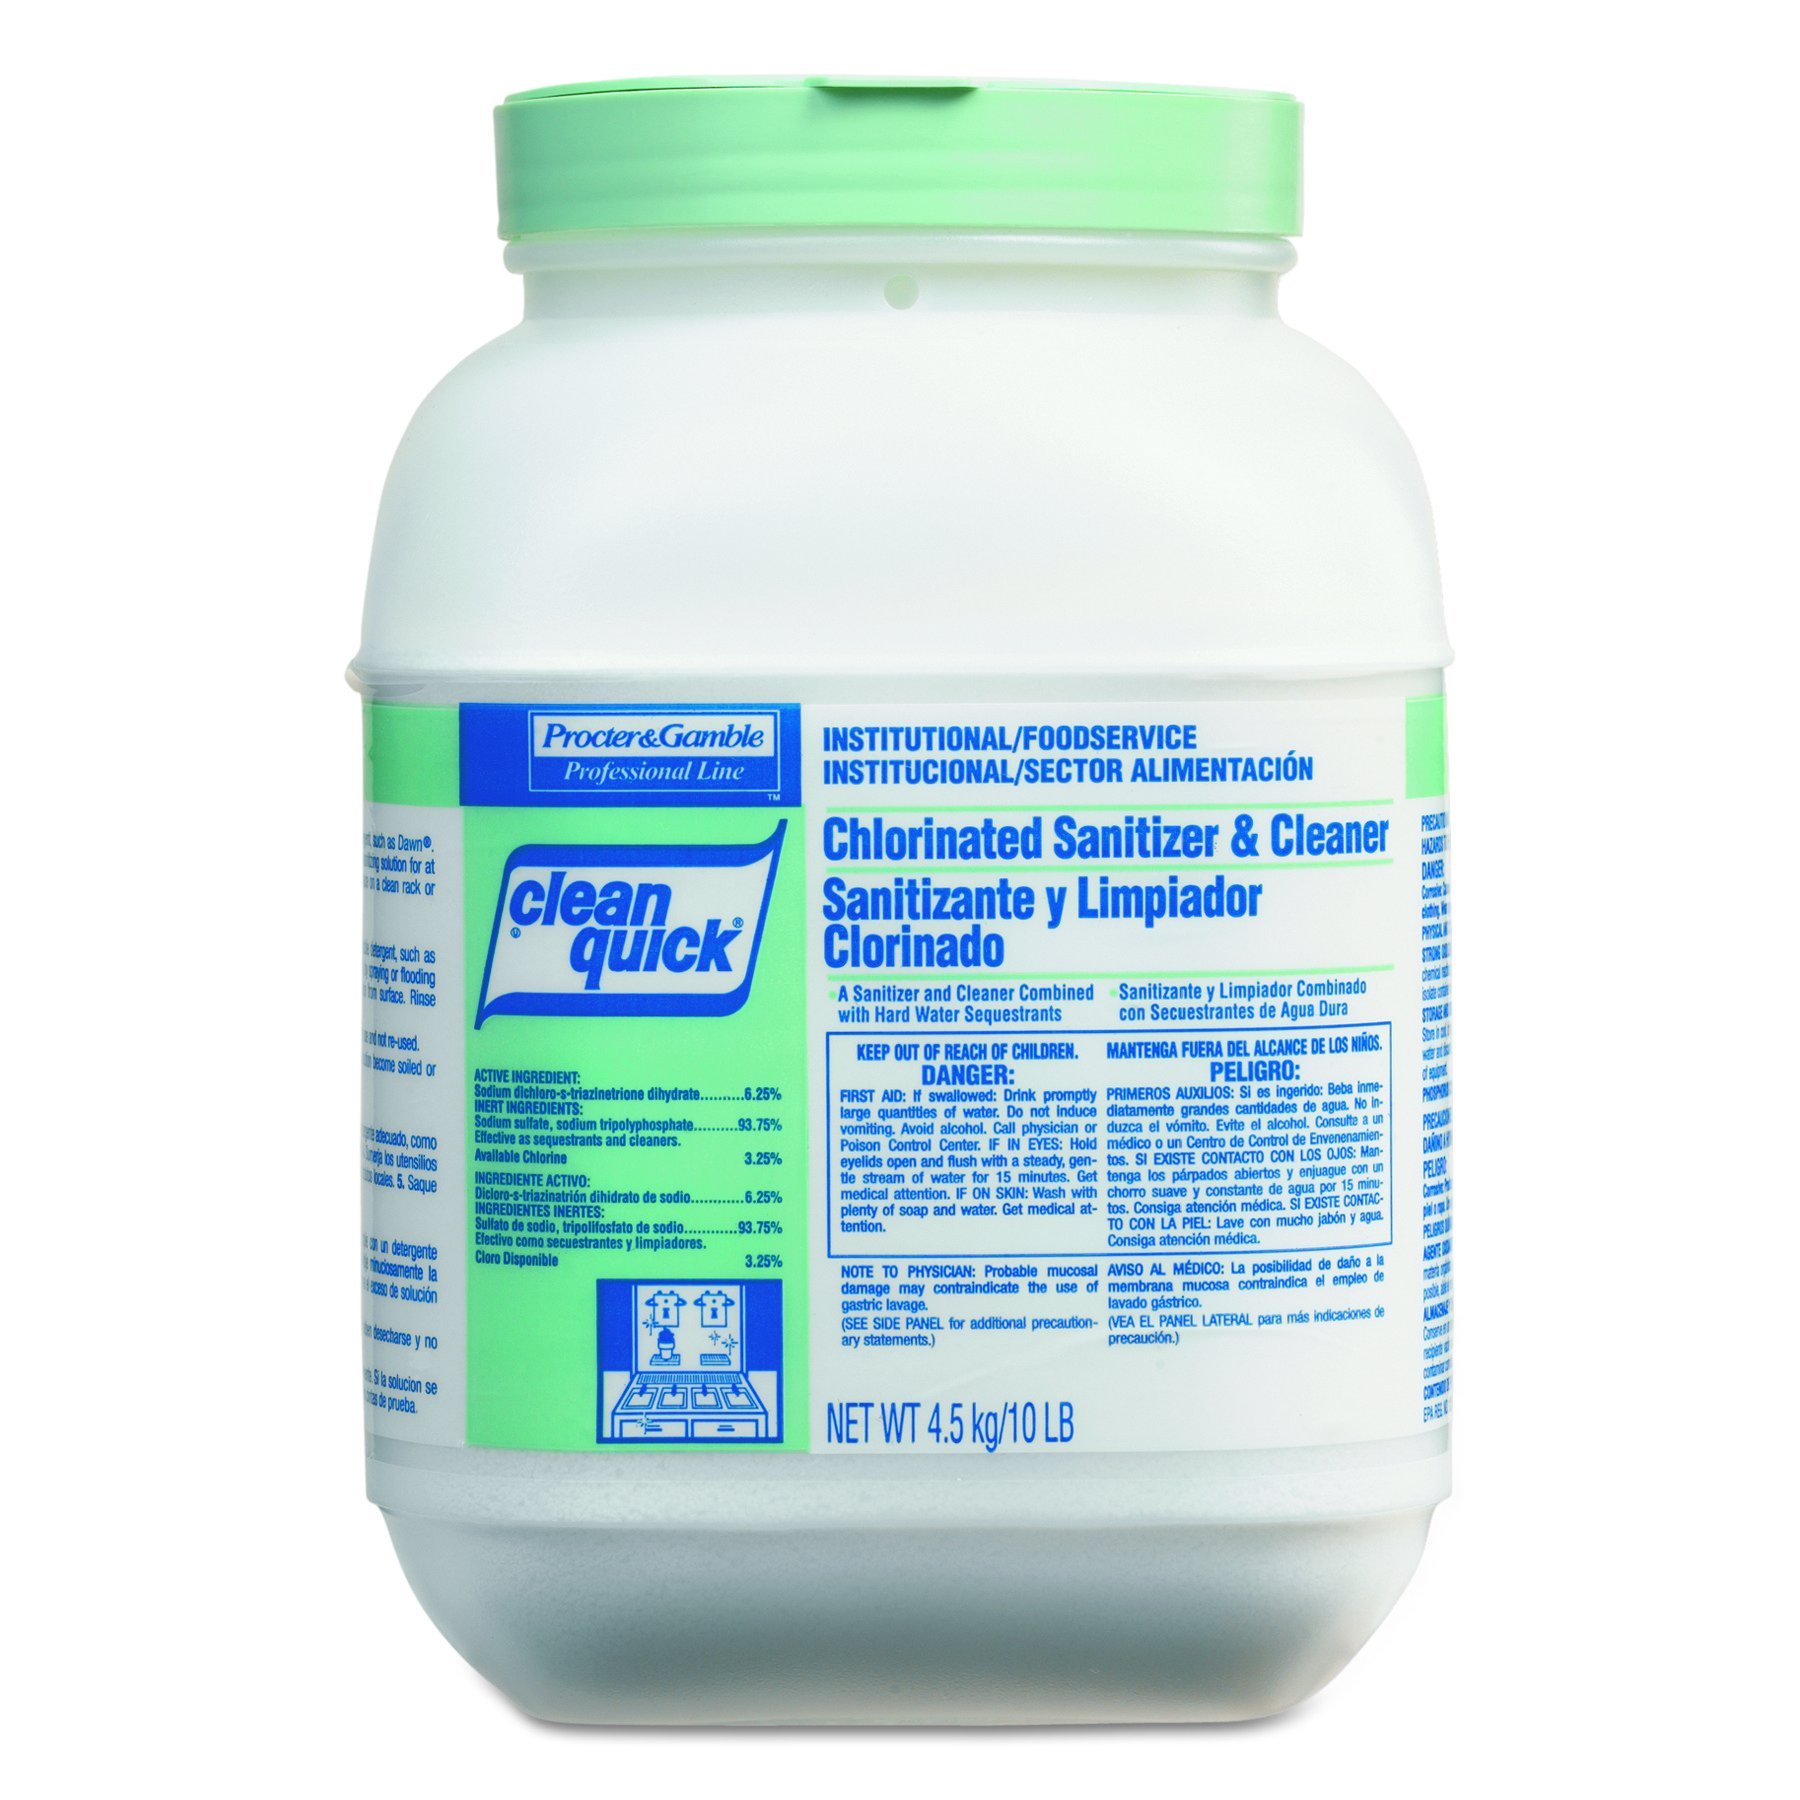 Clean Quick Professional Chlorine Powder Sanitizer and Cleaner, 10 lbs. Container (Case of 3)